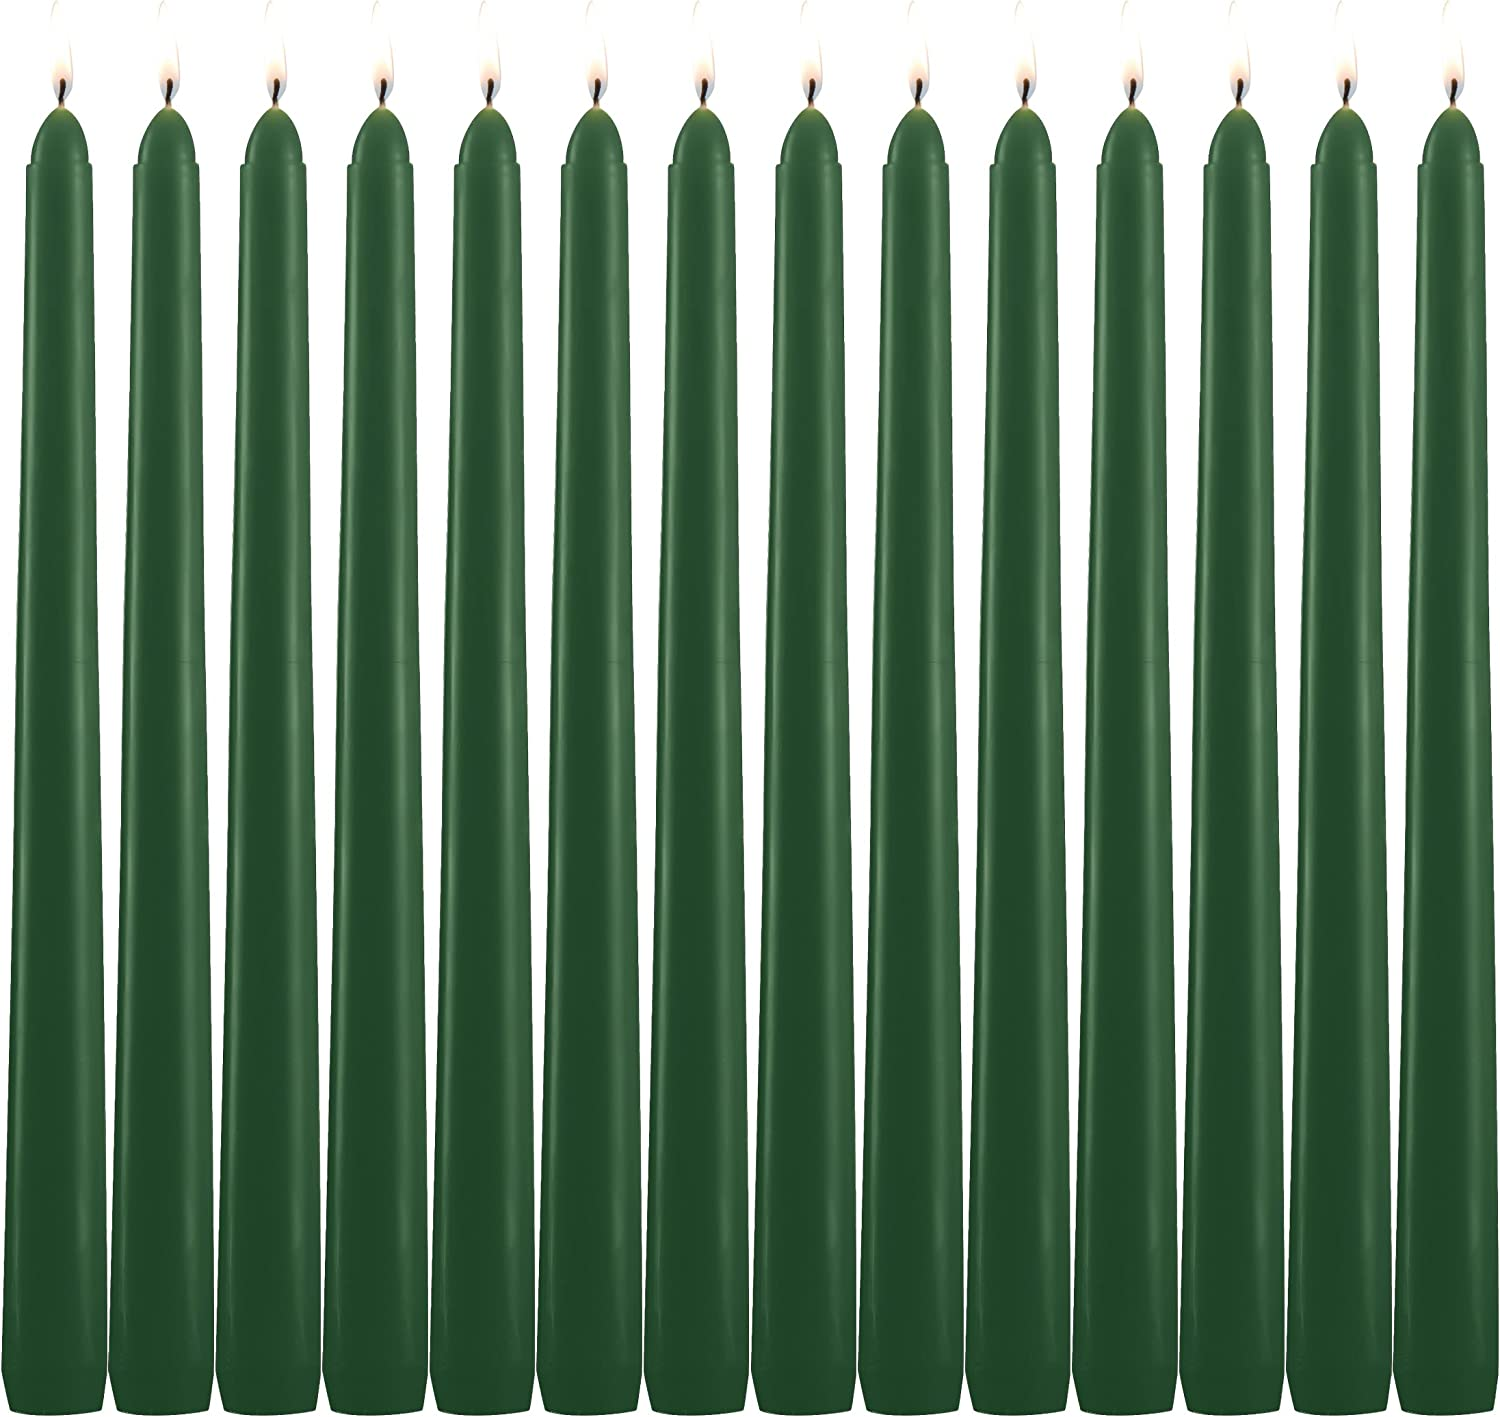 14 Black Taper Candles 10 Inch Tall 3//4 Inch Thick Burn 7.5 Hours Color Is Core and Overdip